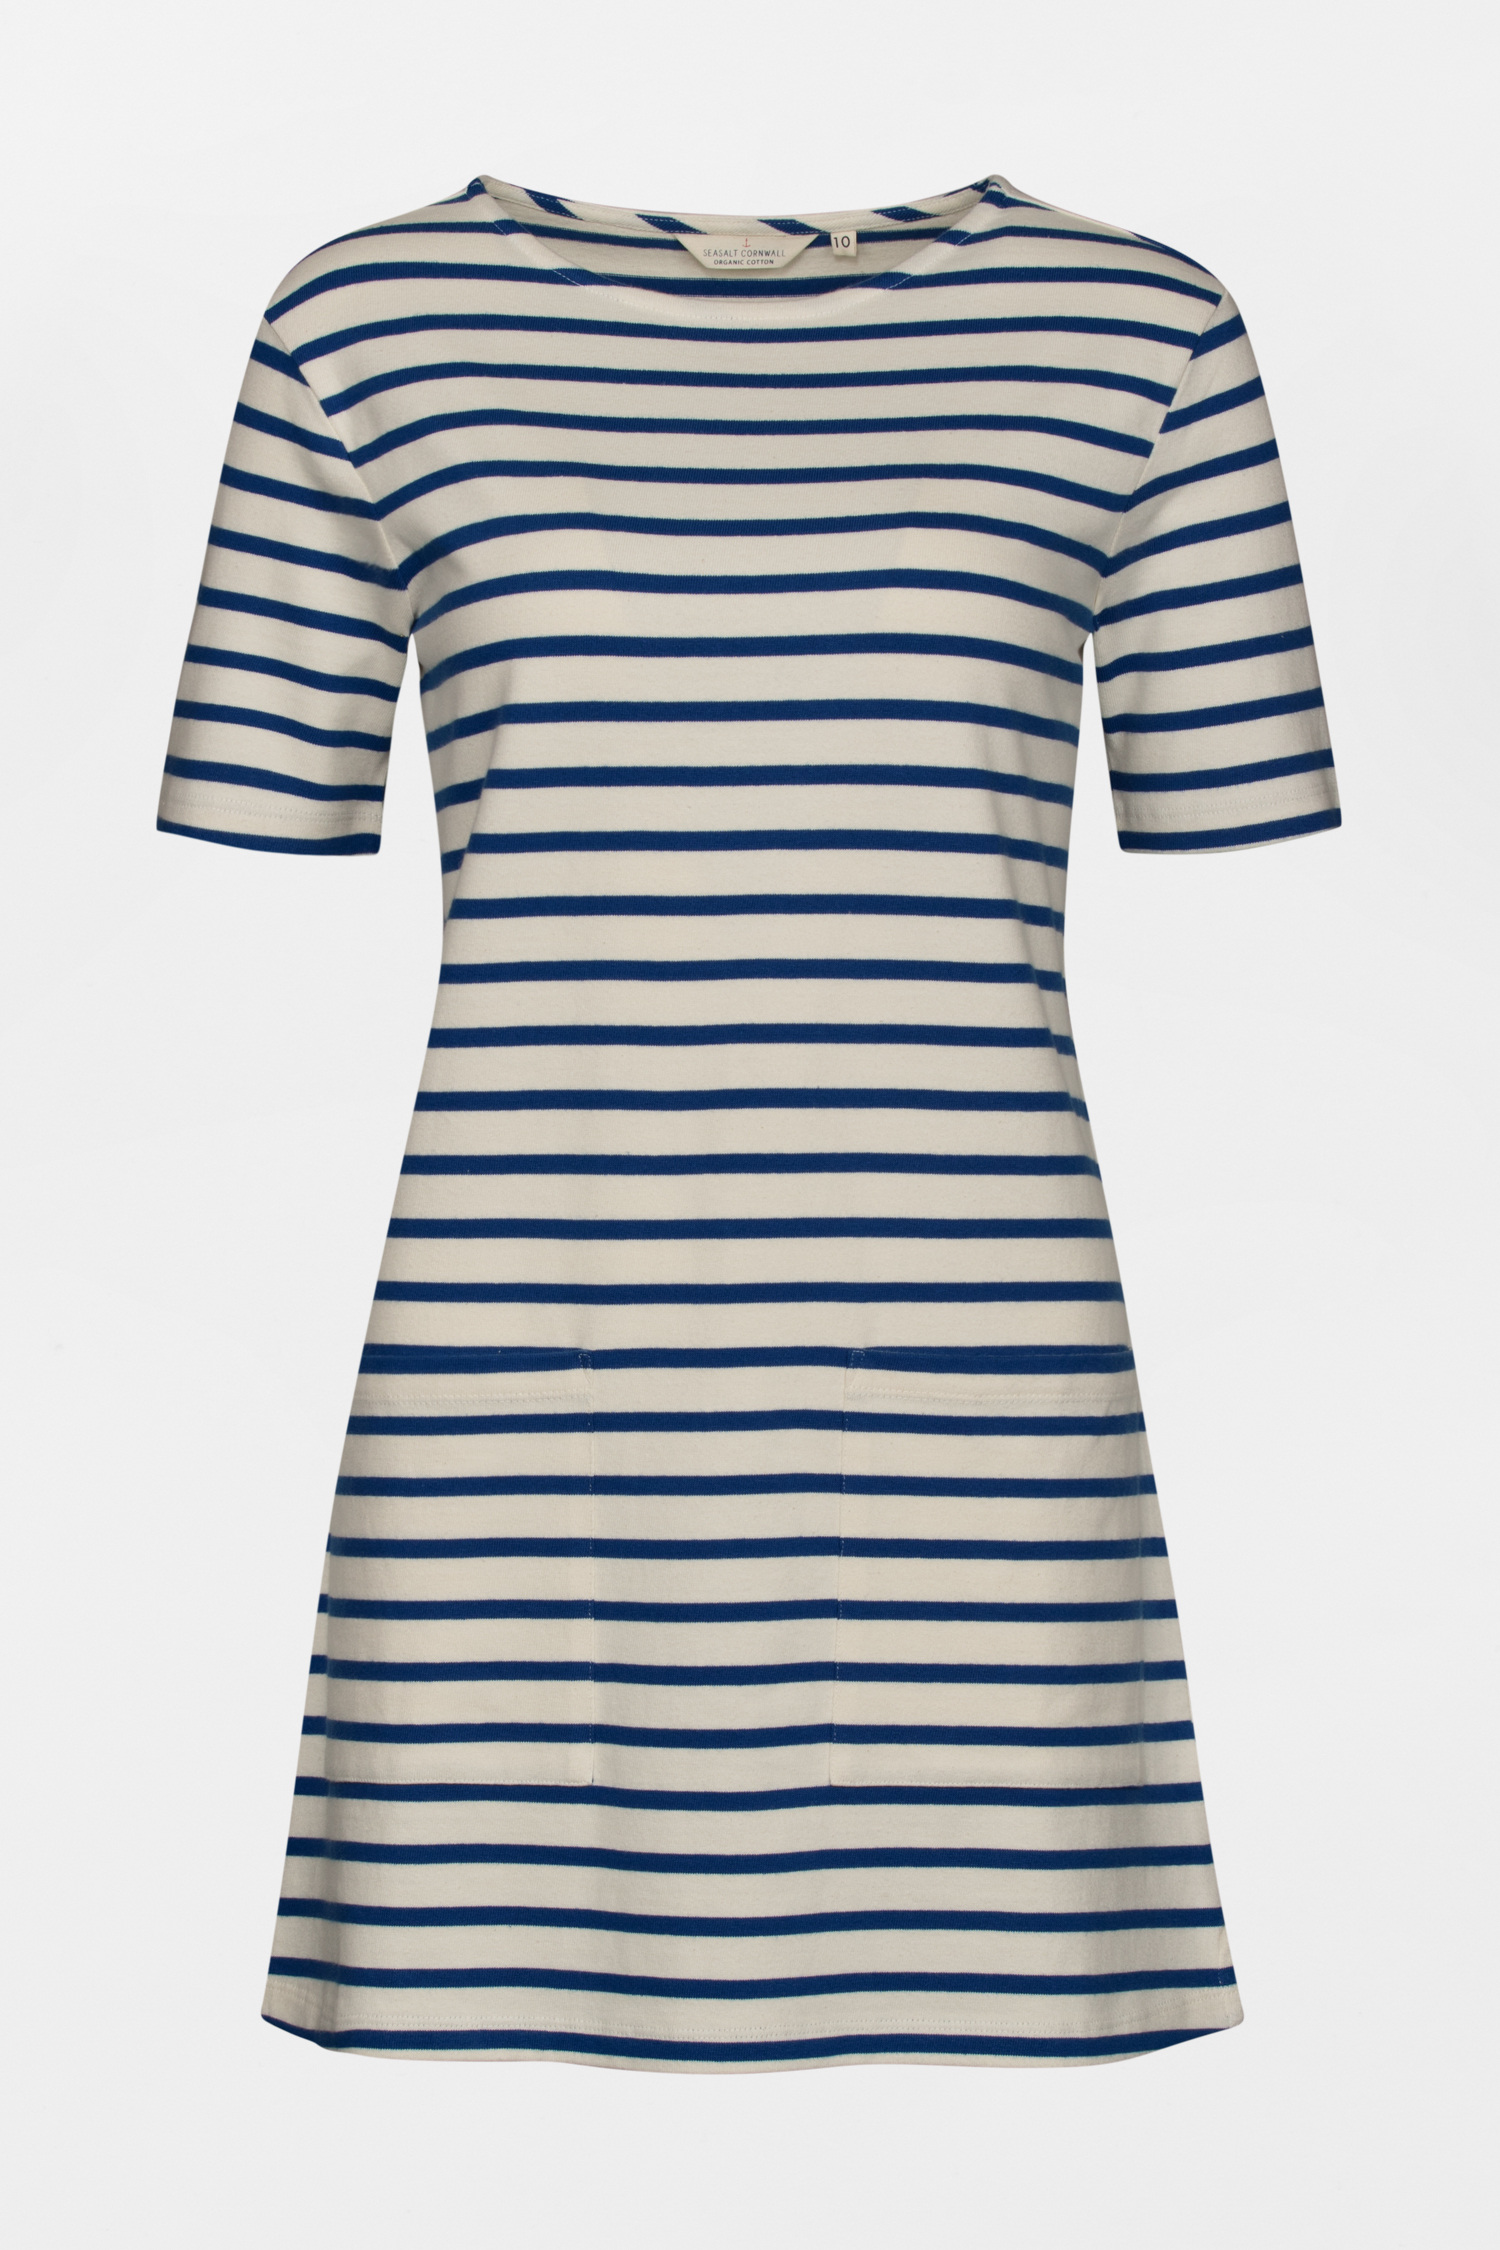 Organic Cotton Nautical Striped Pebble Shore Tunic Seasalt